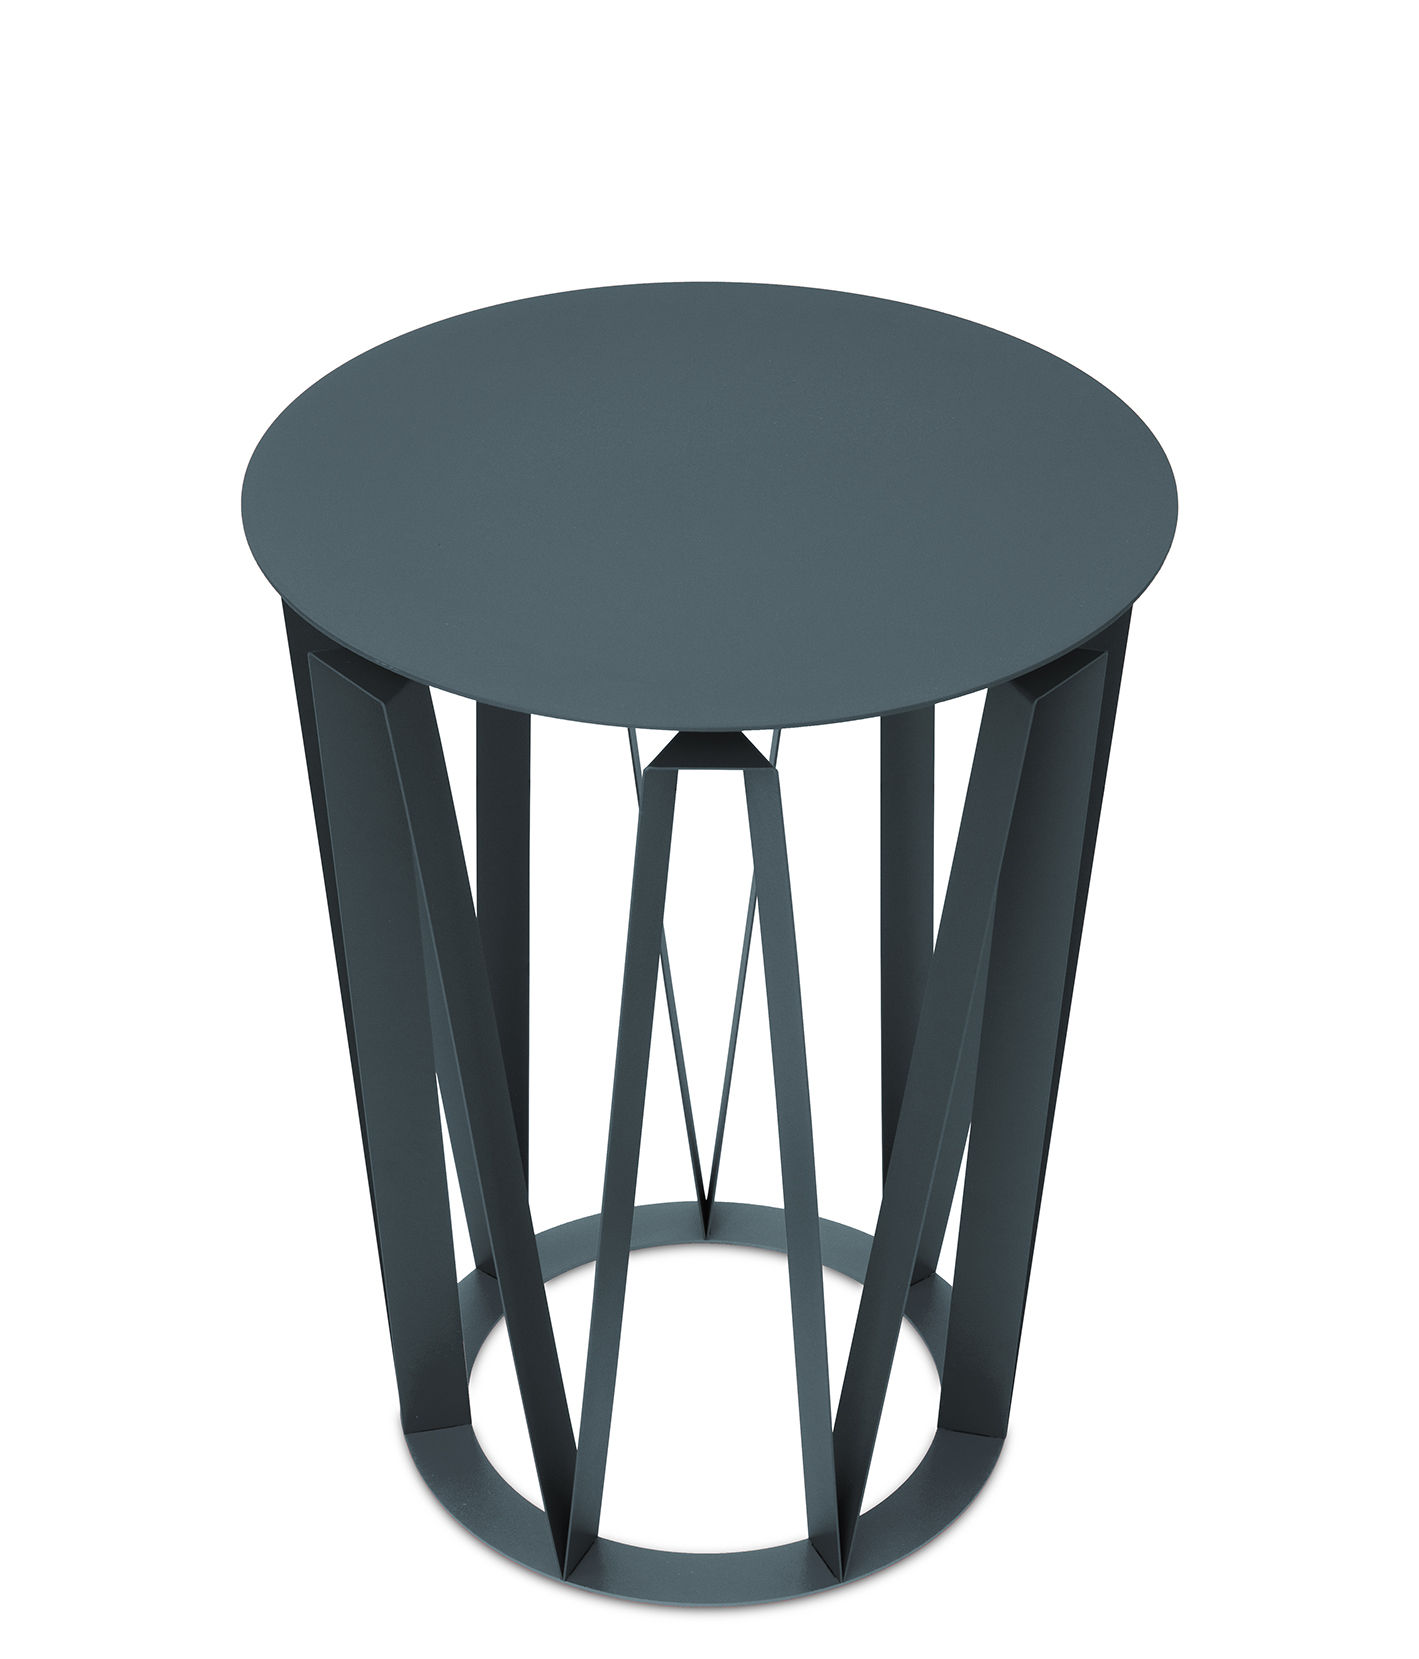 Furniture - Coffee Tables - Arlette End table - / Ø 37 x H 48 cm - Metal by Presse citron - Granite - Lacquered steel plate